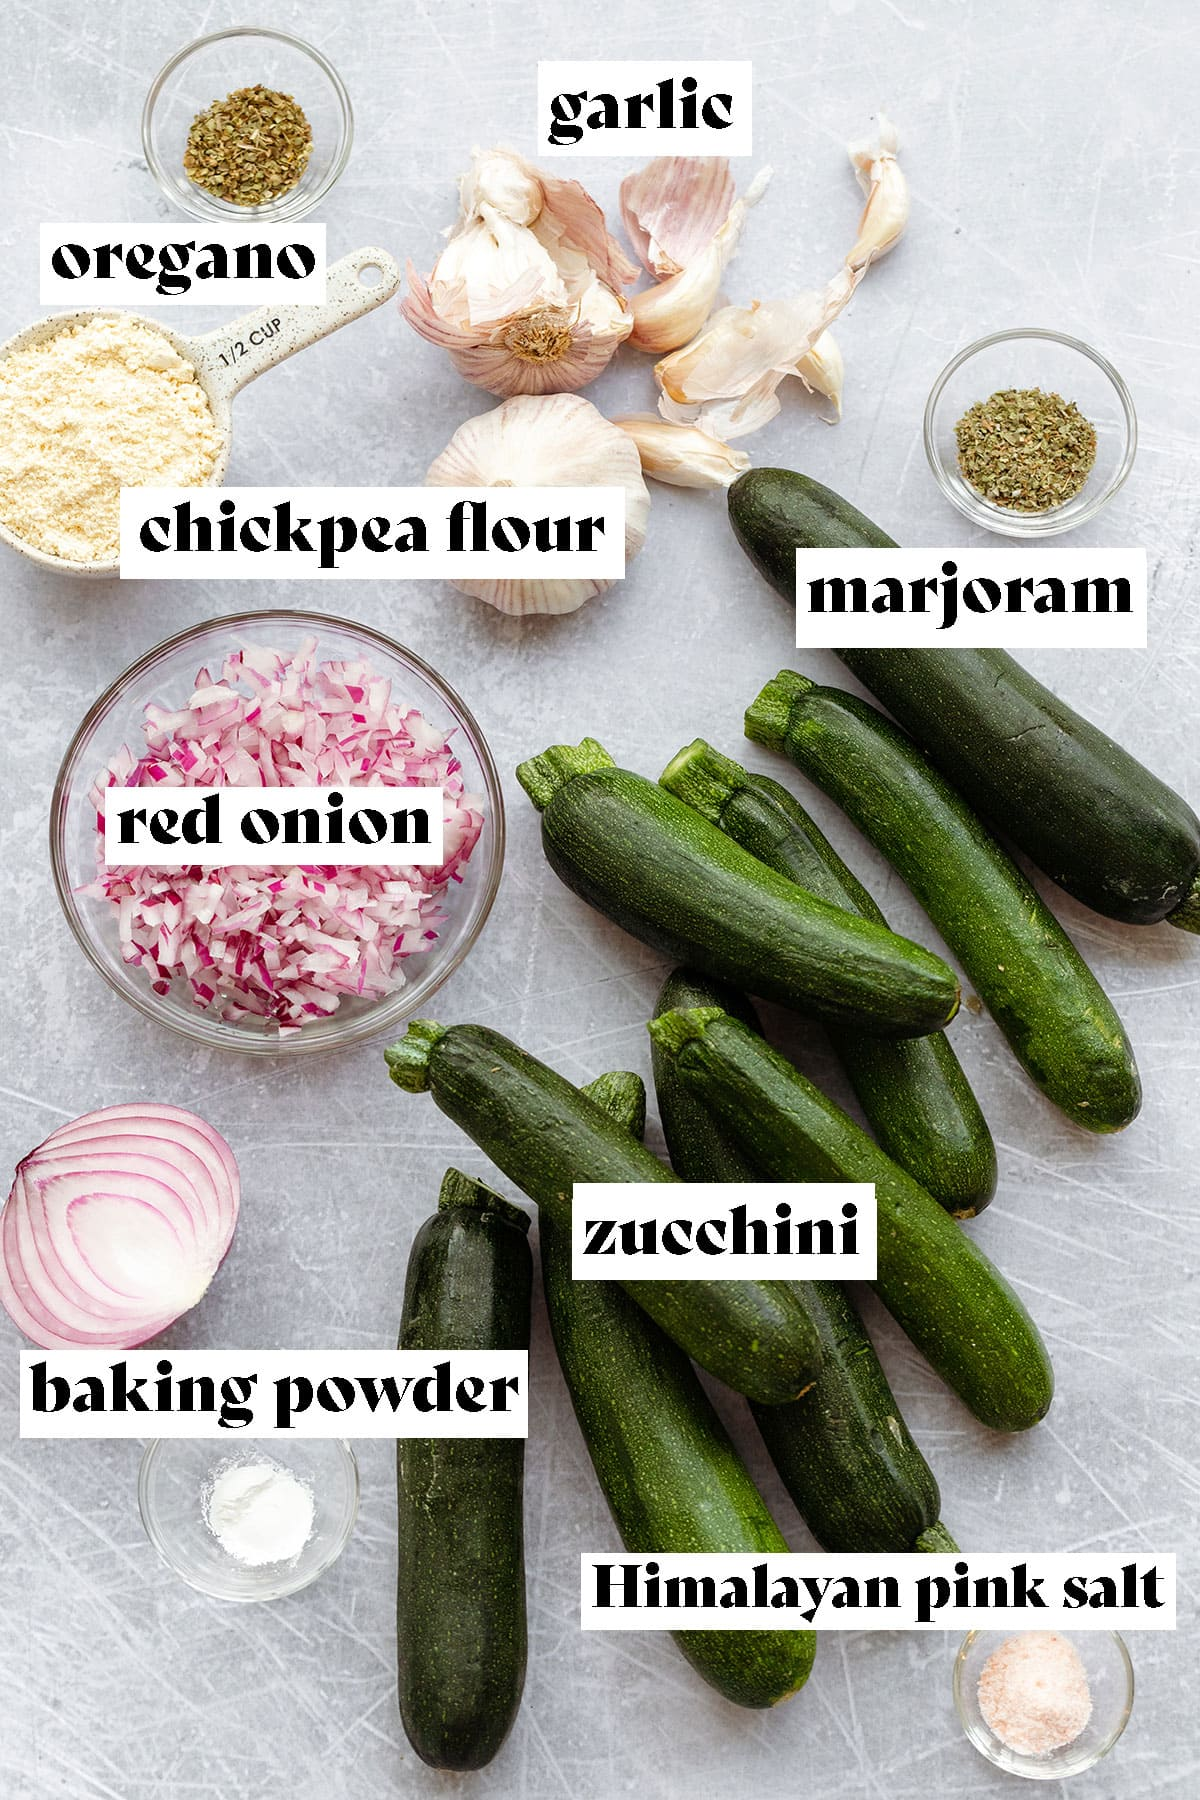 Ingredients to make zucchini fritters layed out on a steel background. Zucchini, red onion, baking powder, himalayan pink salt, marjoram, chickpea flour, oregano, and garlic.